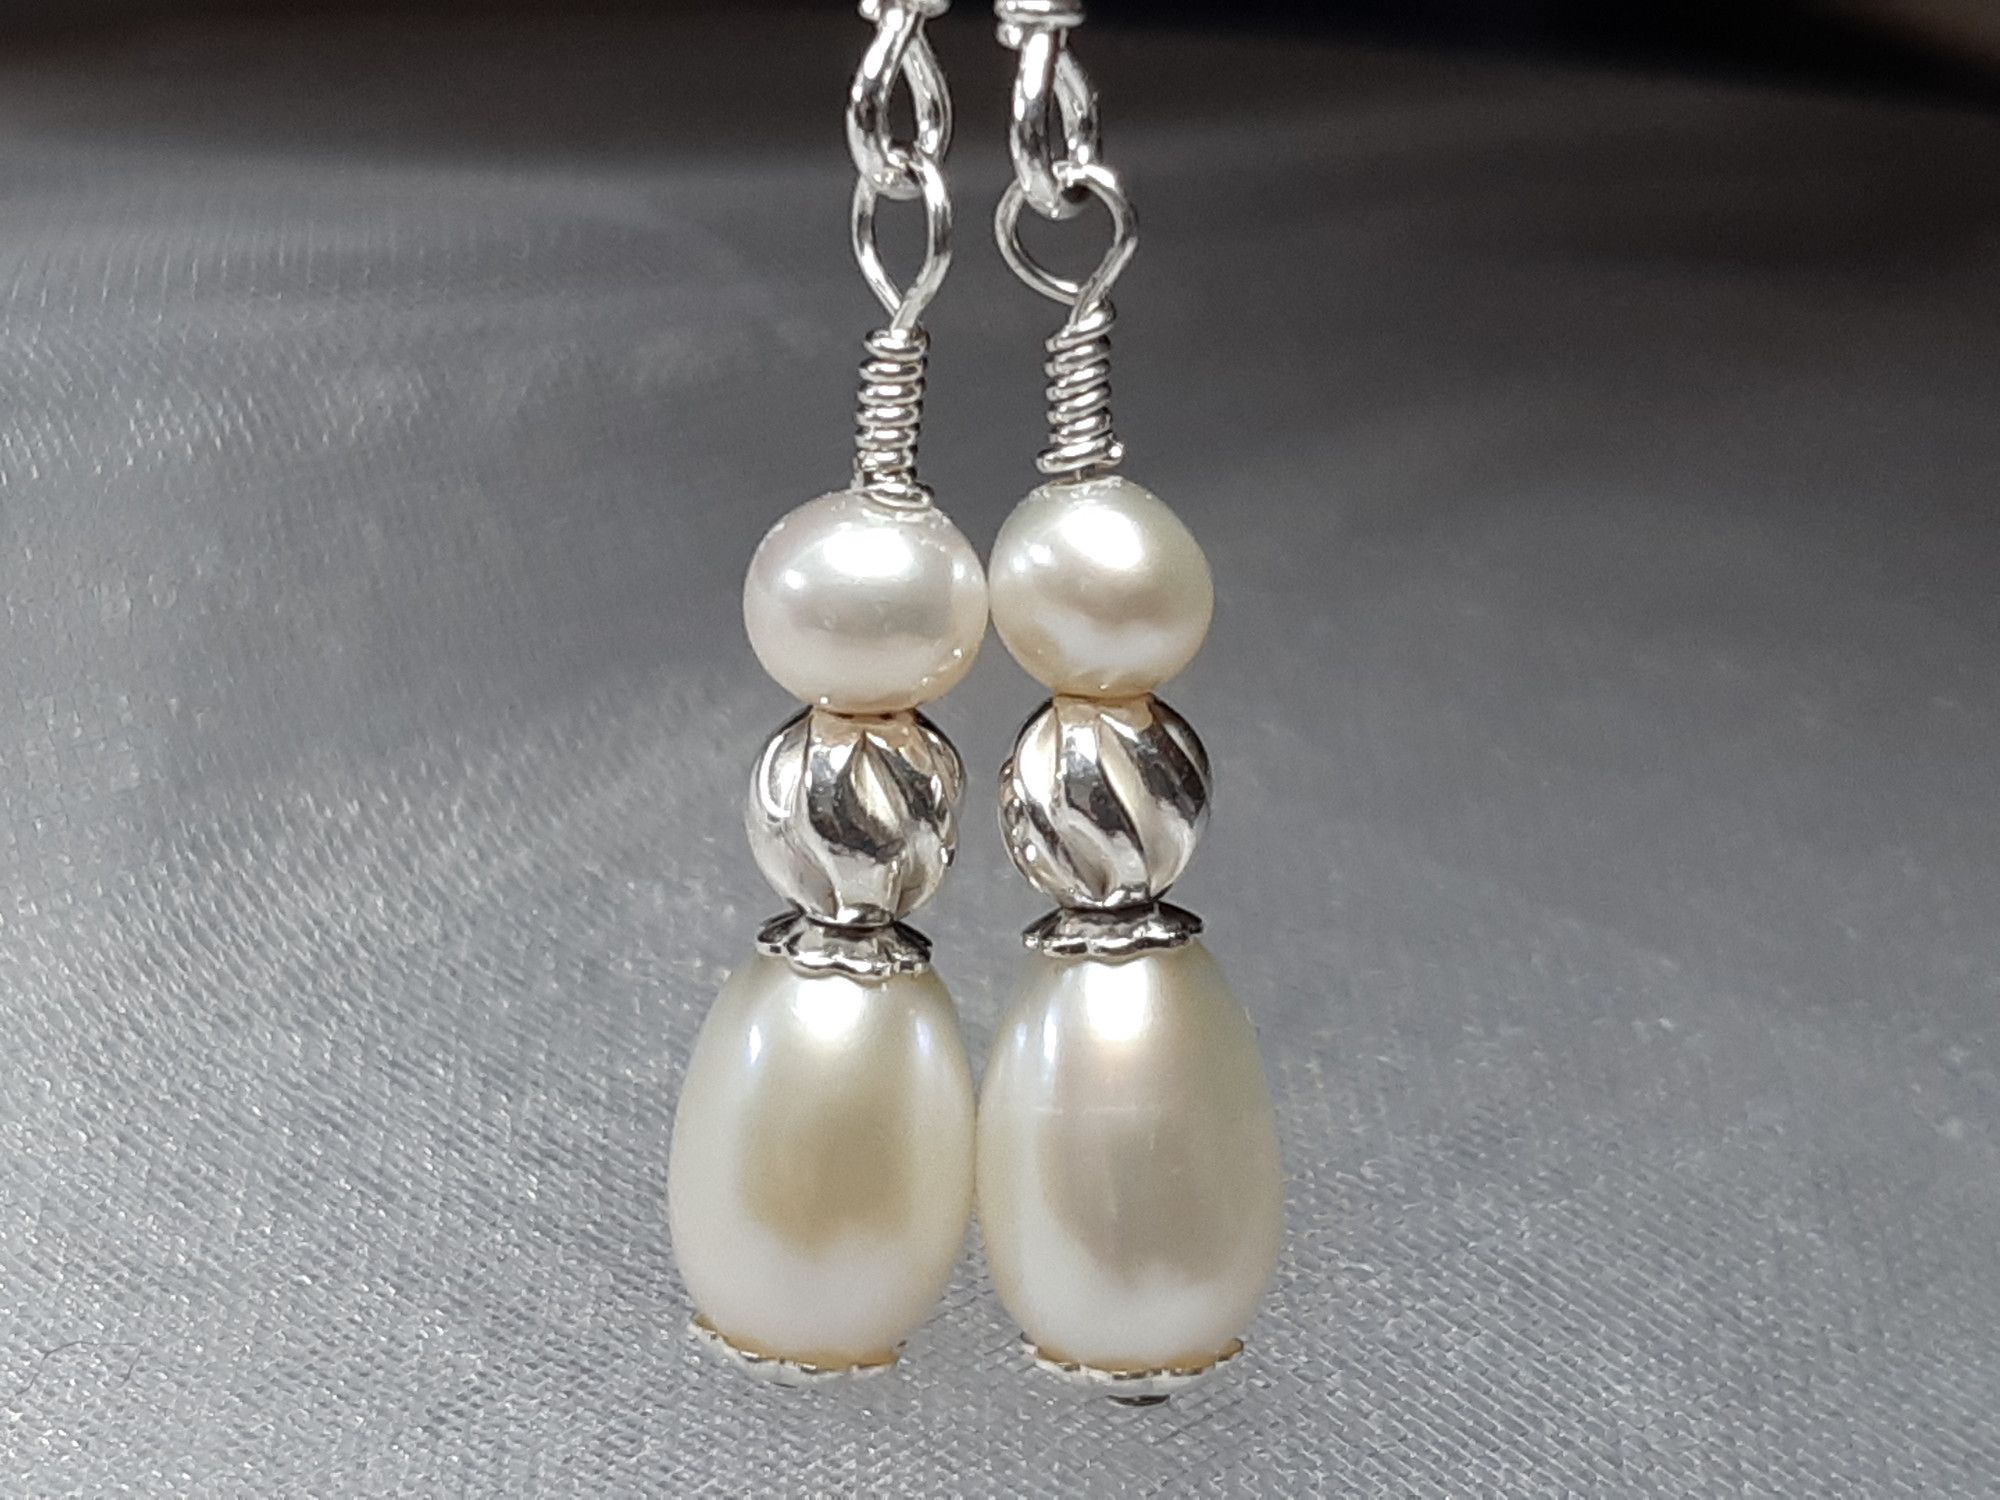 Occasion-bridal-pearl drop earrings with sterling silver-3.jpg